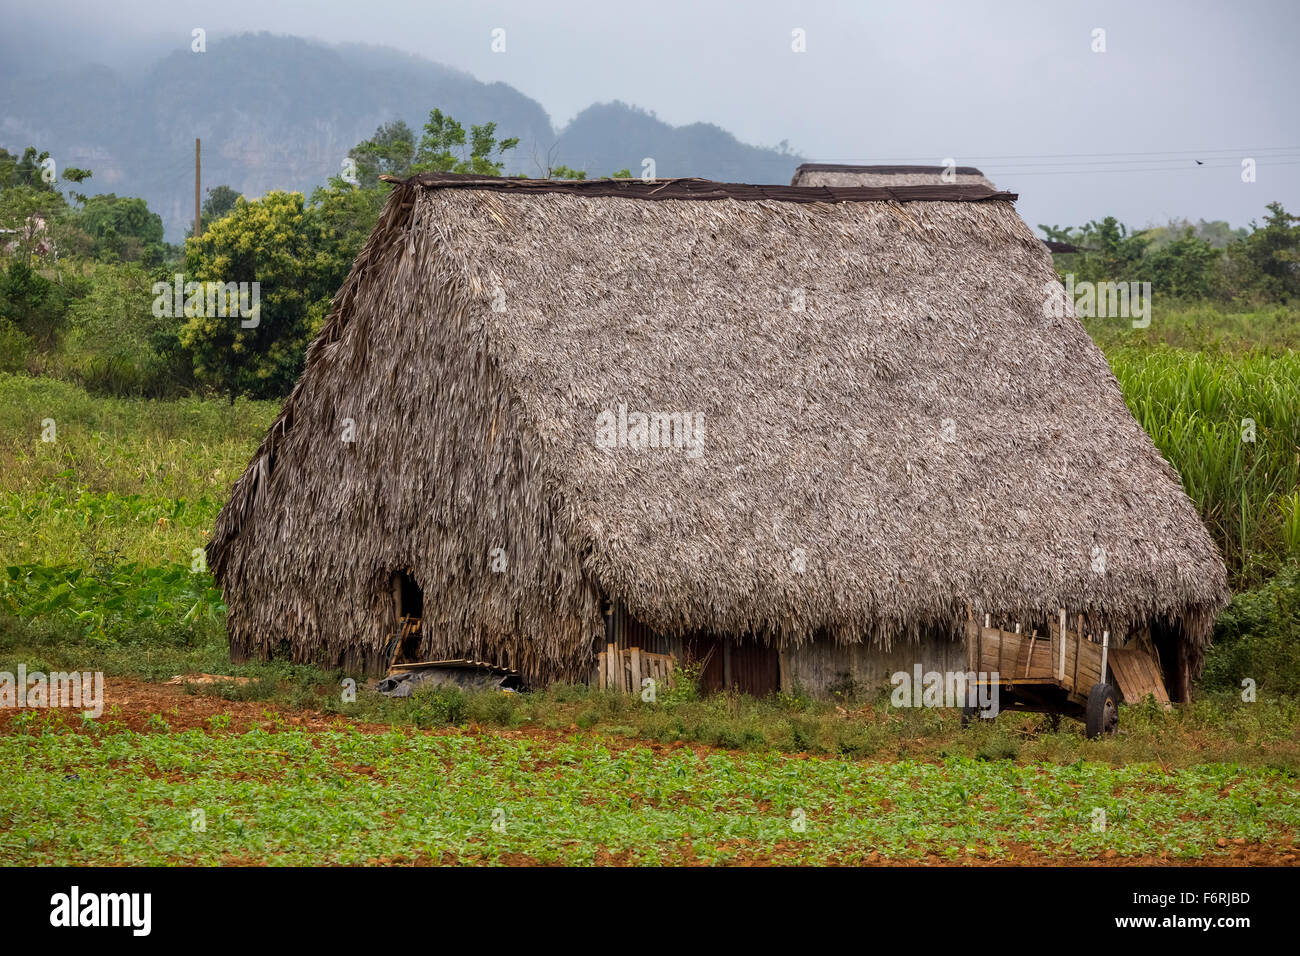 covered with leaves barn for drying tobacco leaves, Viñales, Cuba, Pinar del Río, Cuba - Stock Image